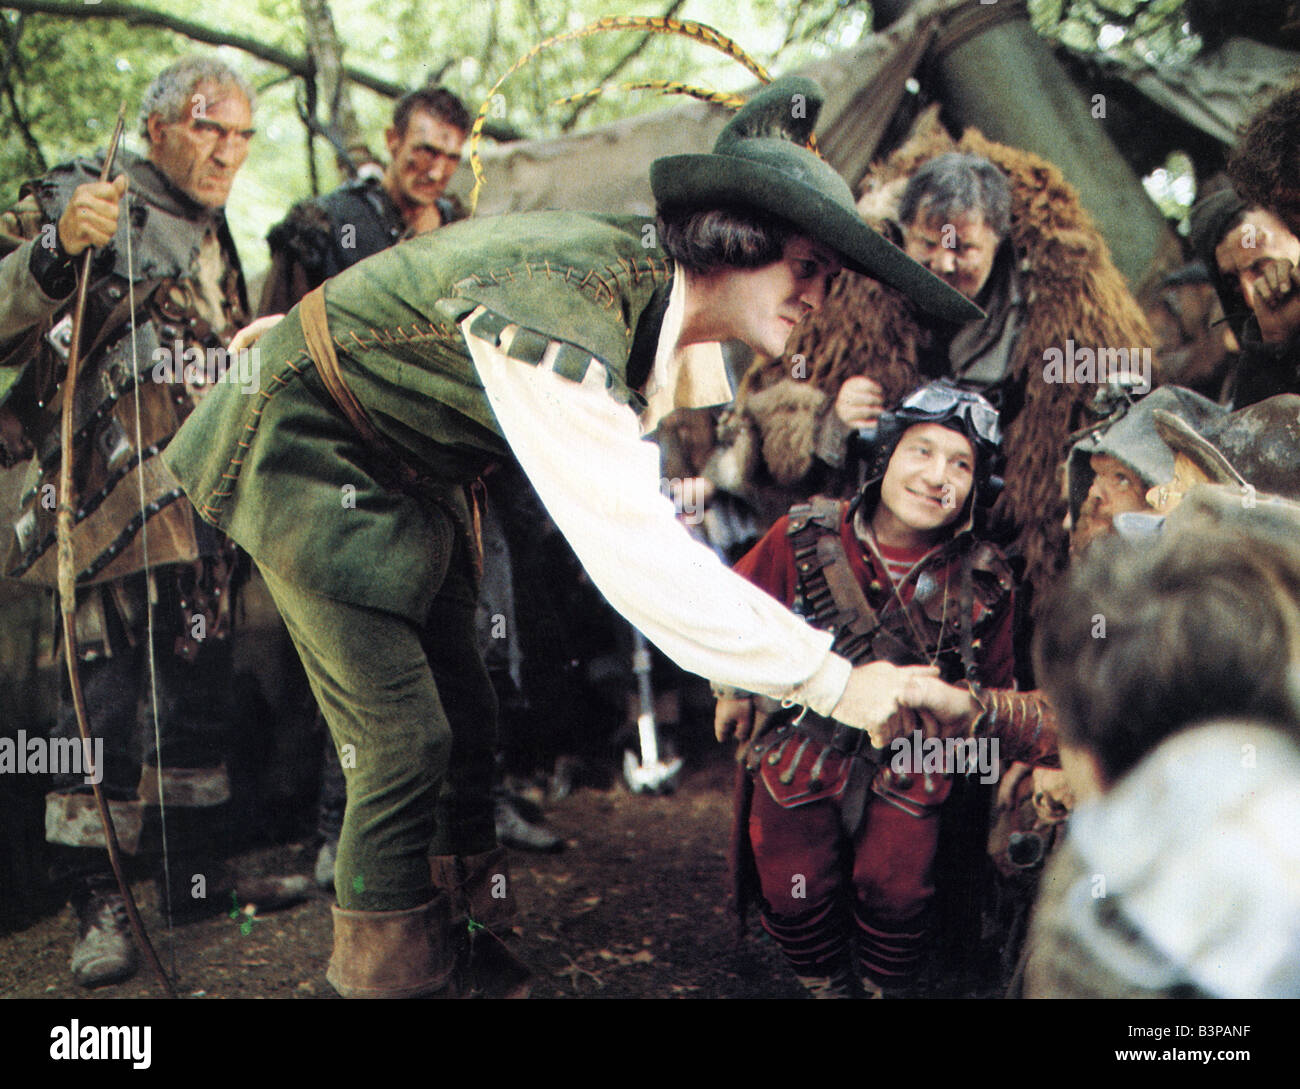 TIME BANDITS 1981 Handmade Films film with John Cleese - Stock Image